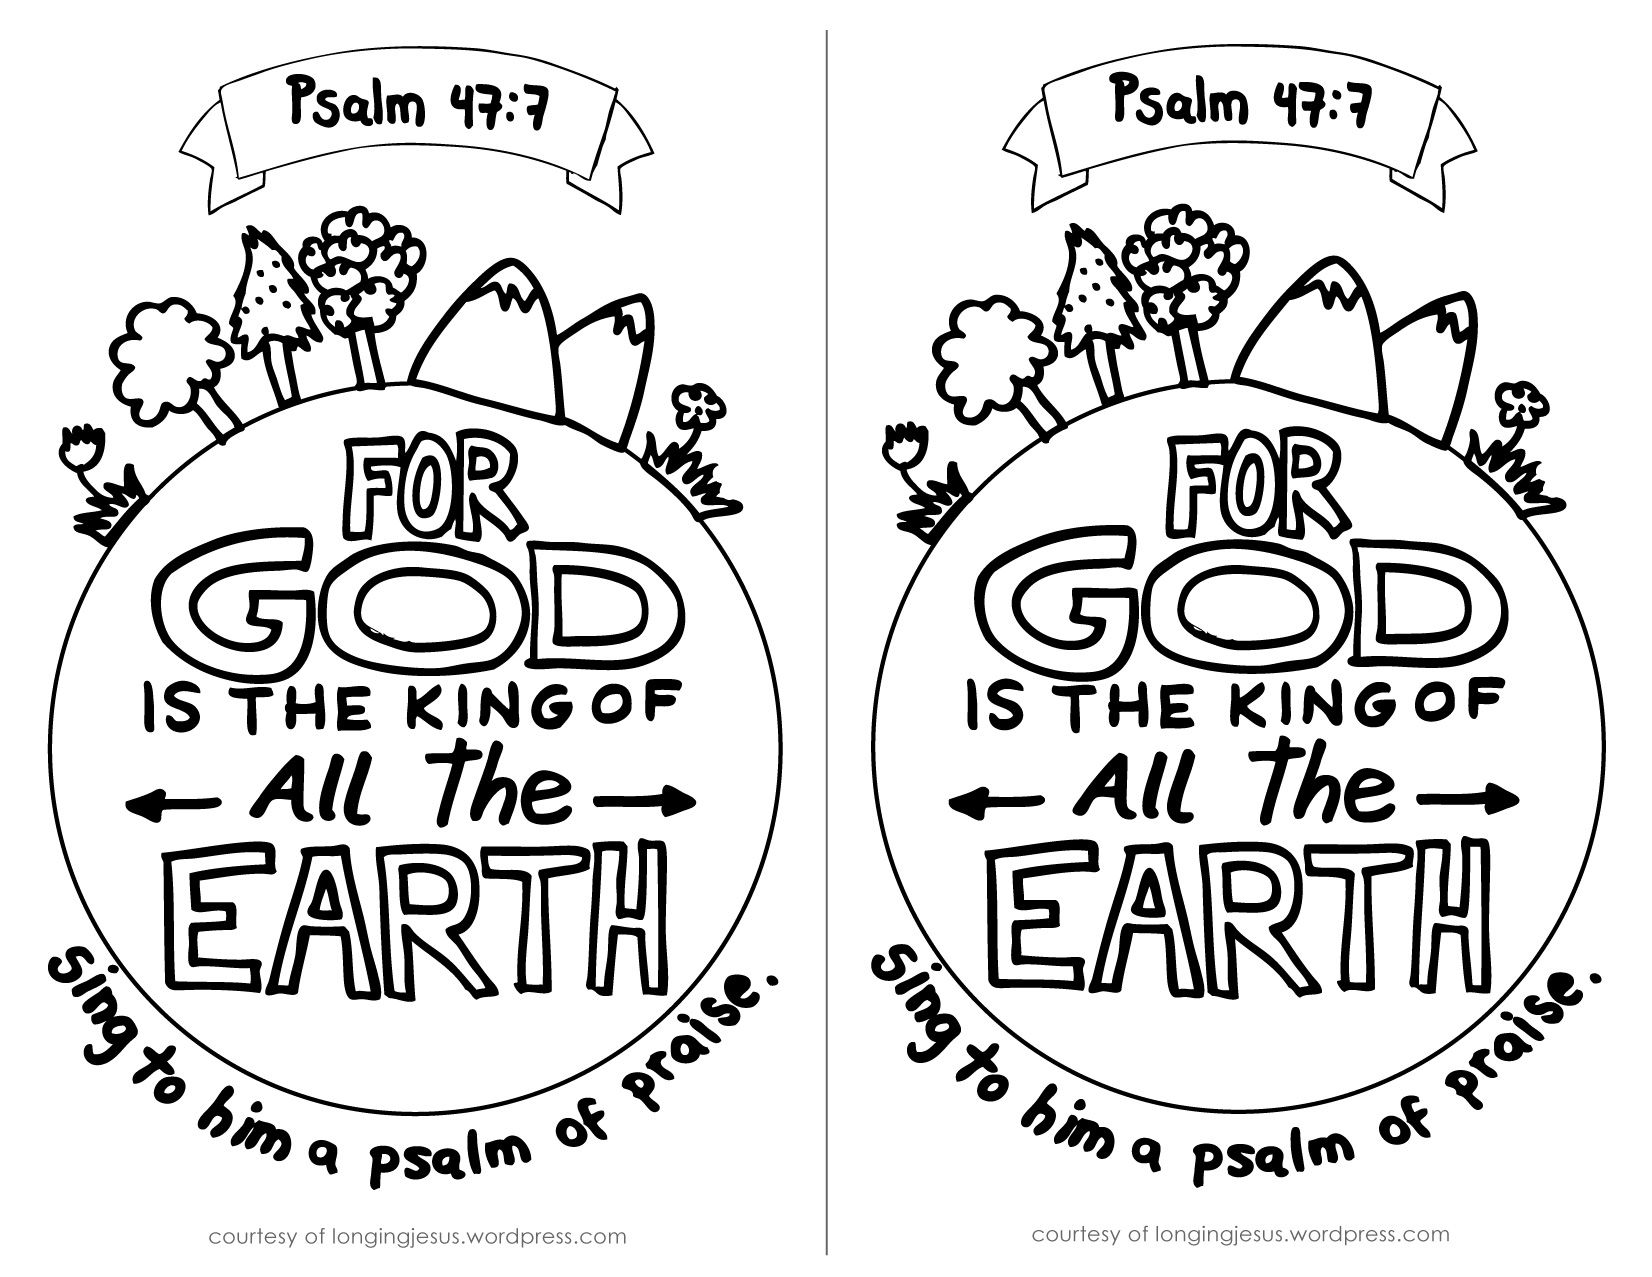 psalm-47-7-coloring-page-by-albtme.jpg (1652×1277) | Sunday School ...